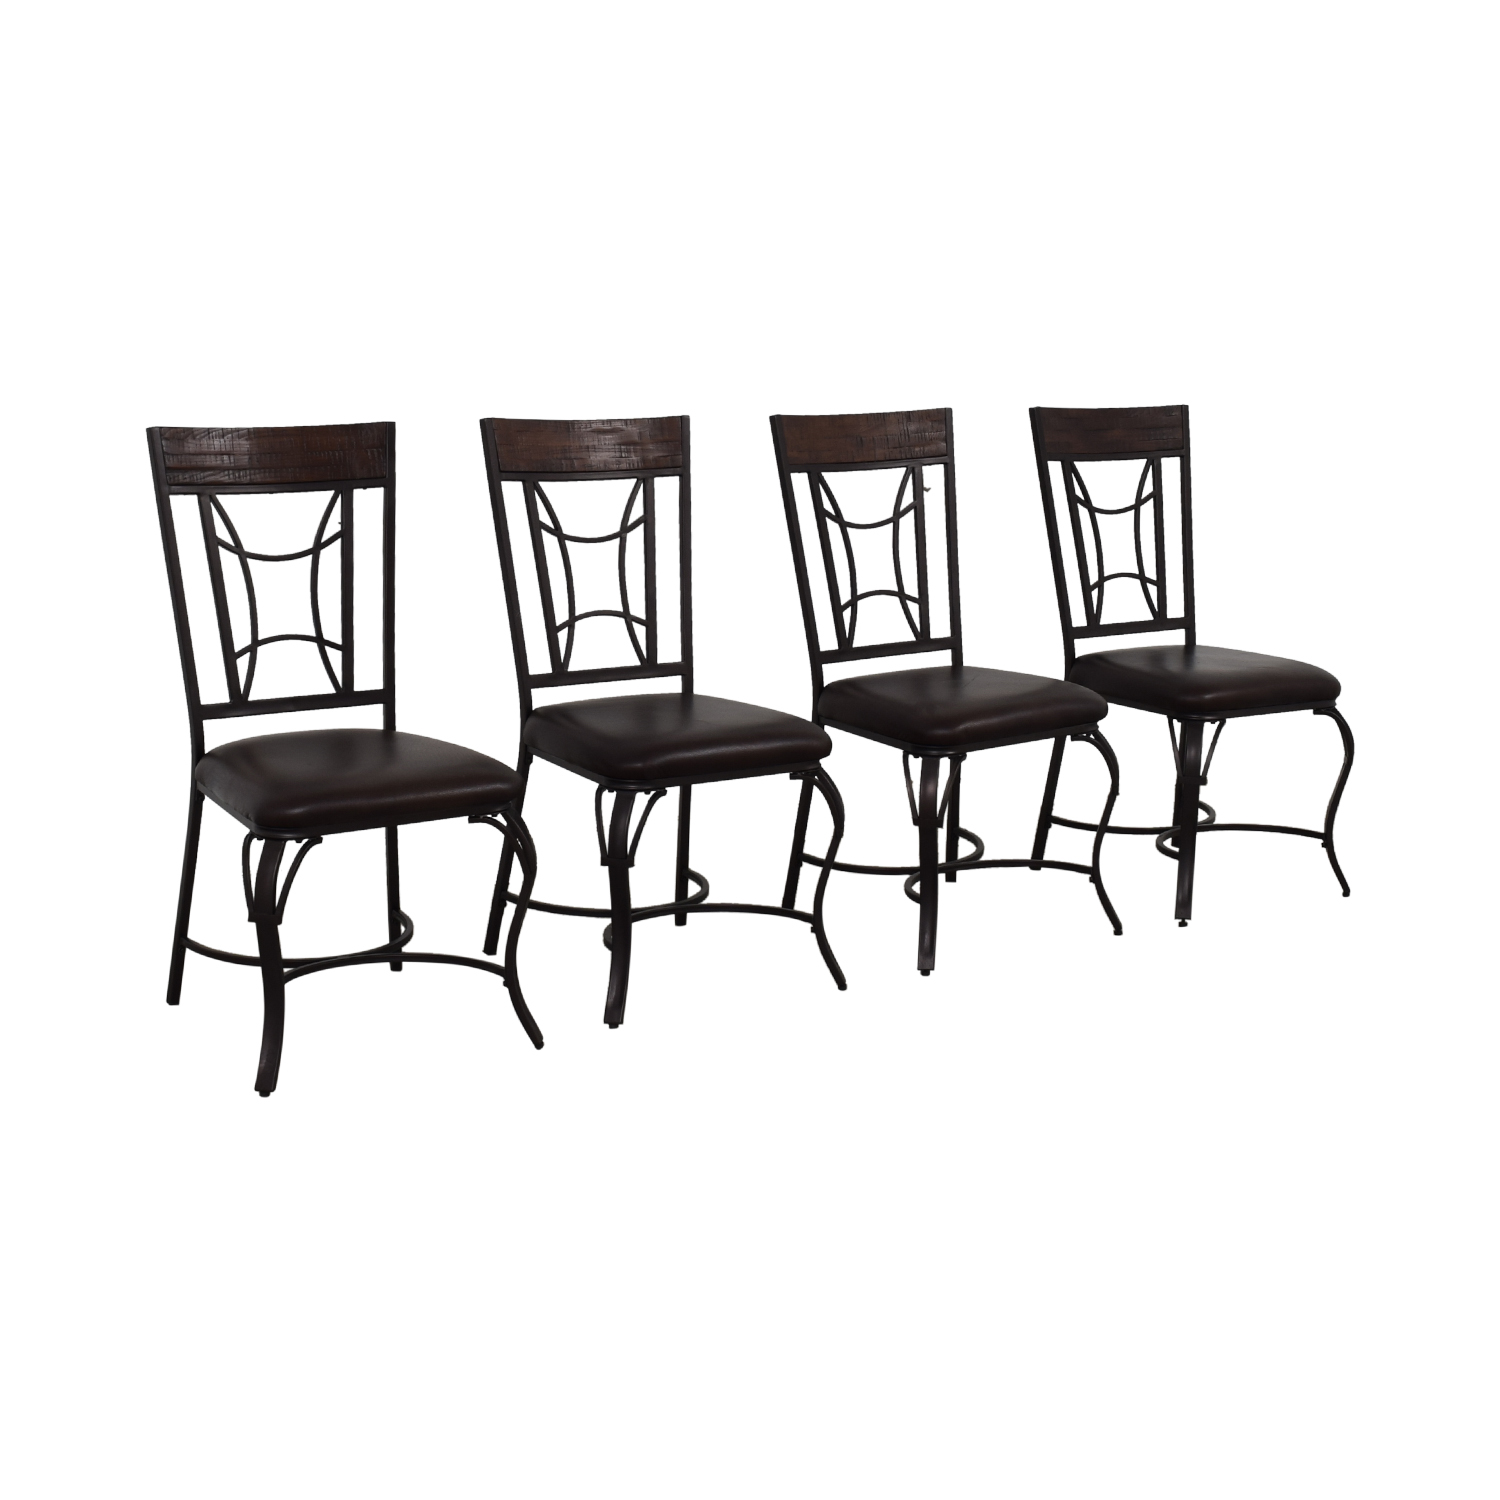 Hillsdale Furniture Hillsdale Furniture Dining Chairs Chairs